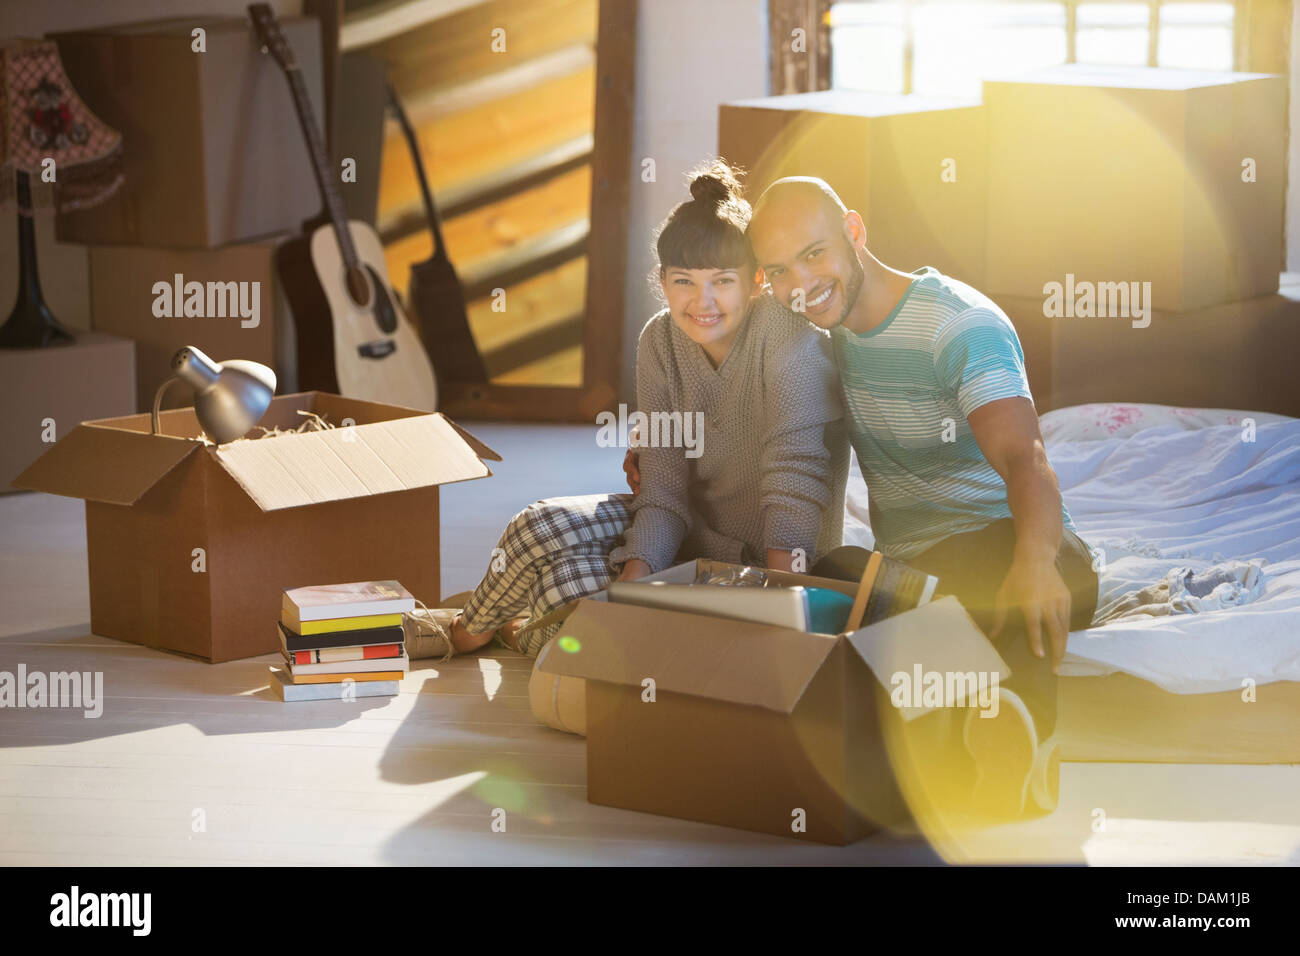 Couple unpacking boxes in attic Photo Stock